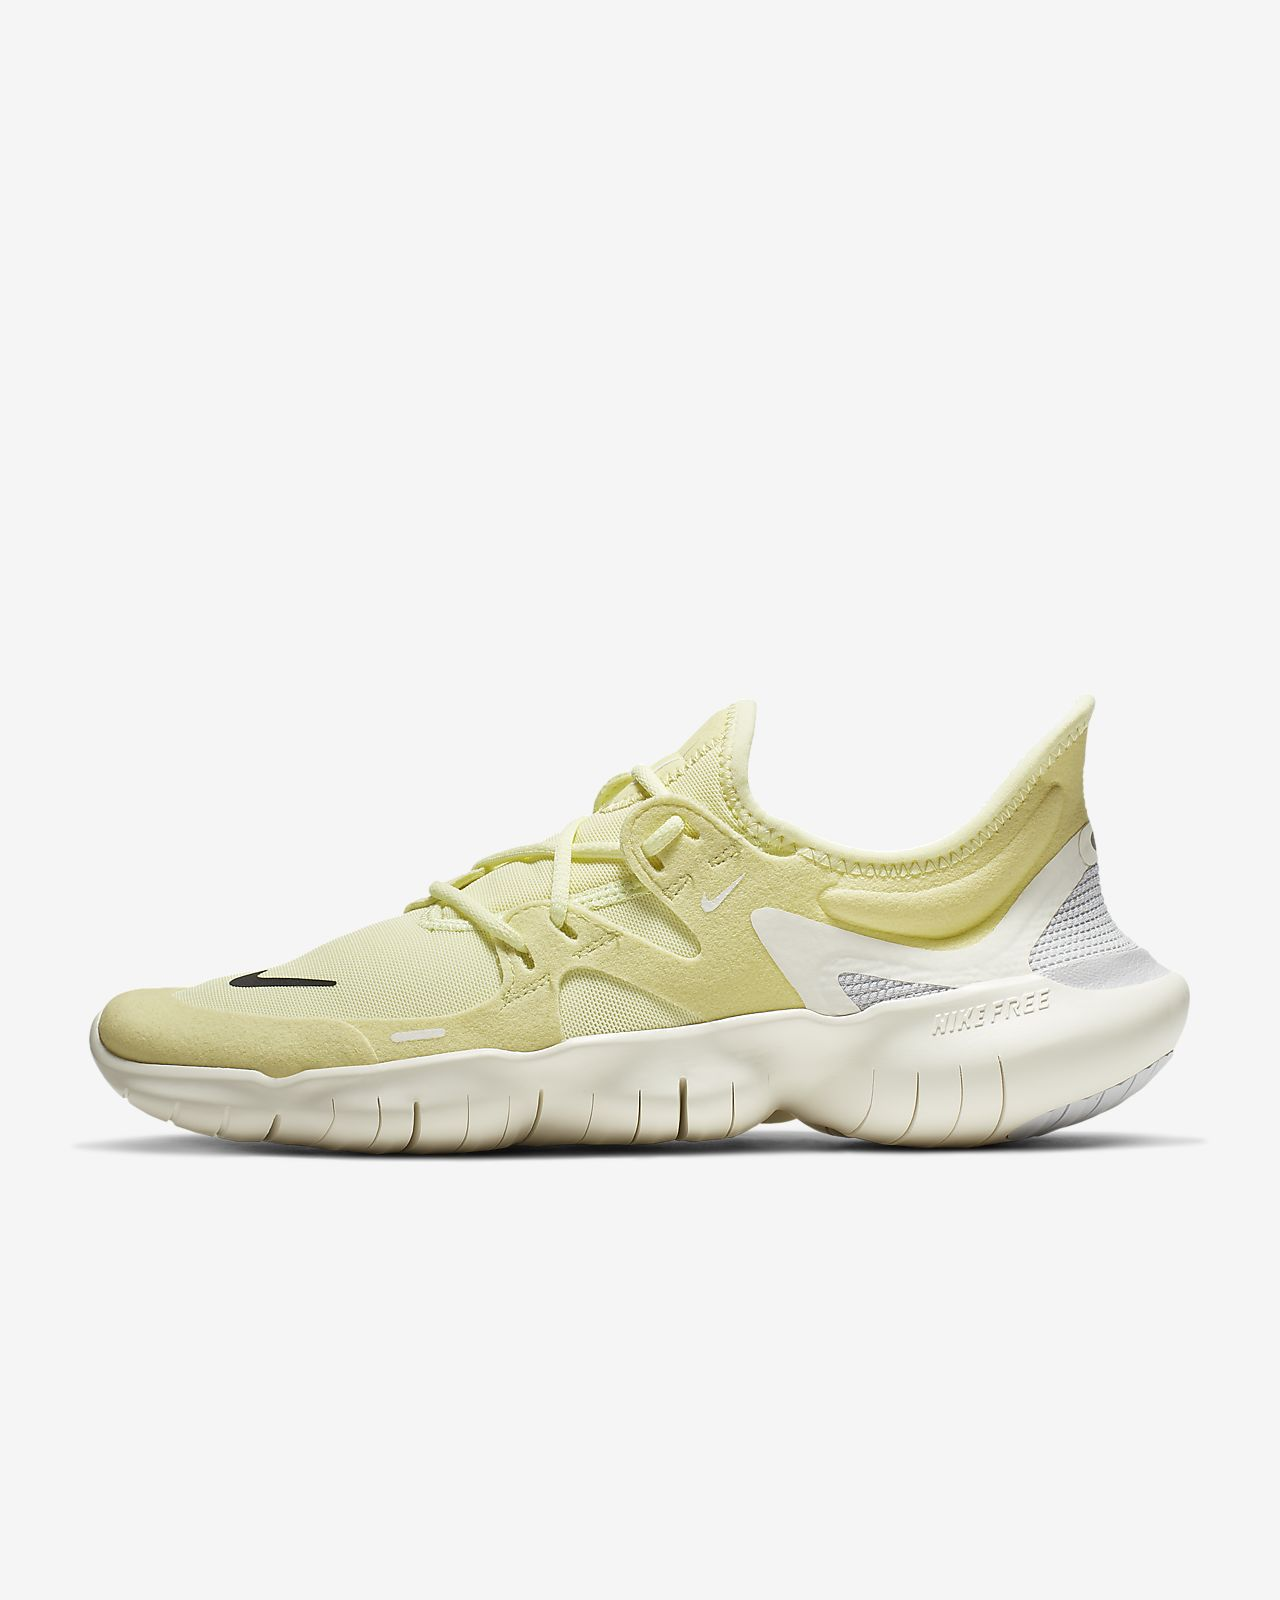 best sneakers a4522 63422 ... Chaussure de running Nike Free RN 5.0 pour Femme